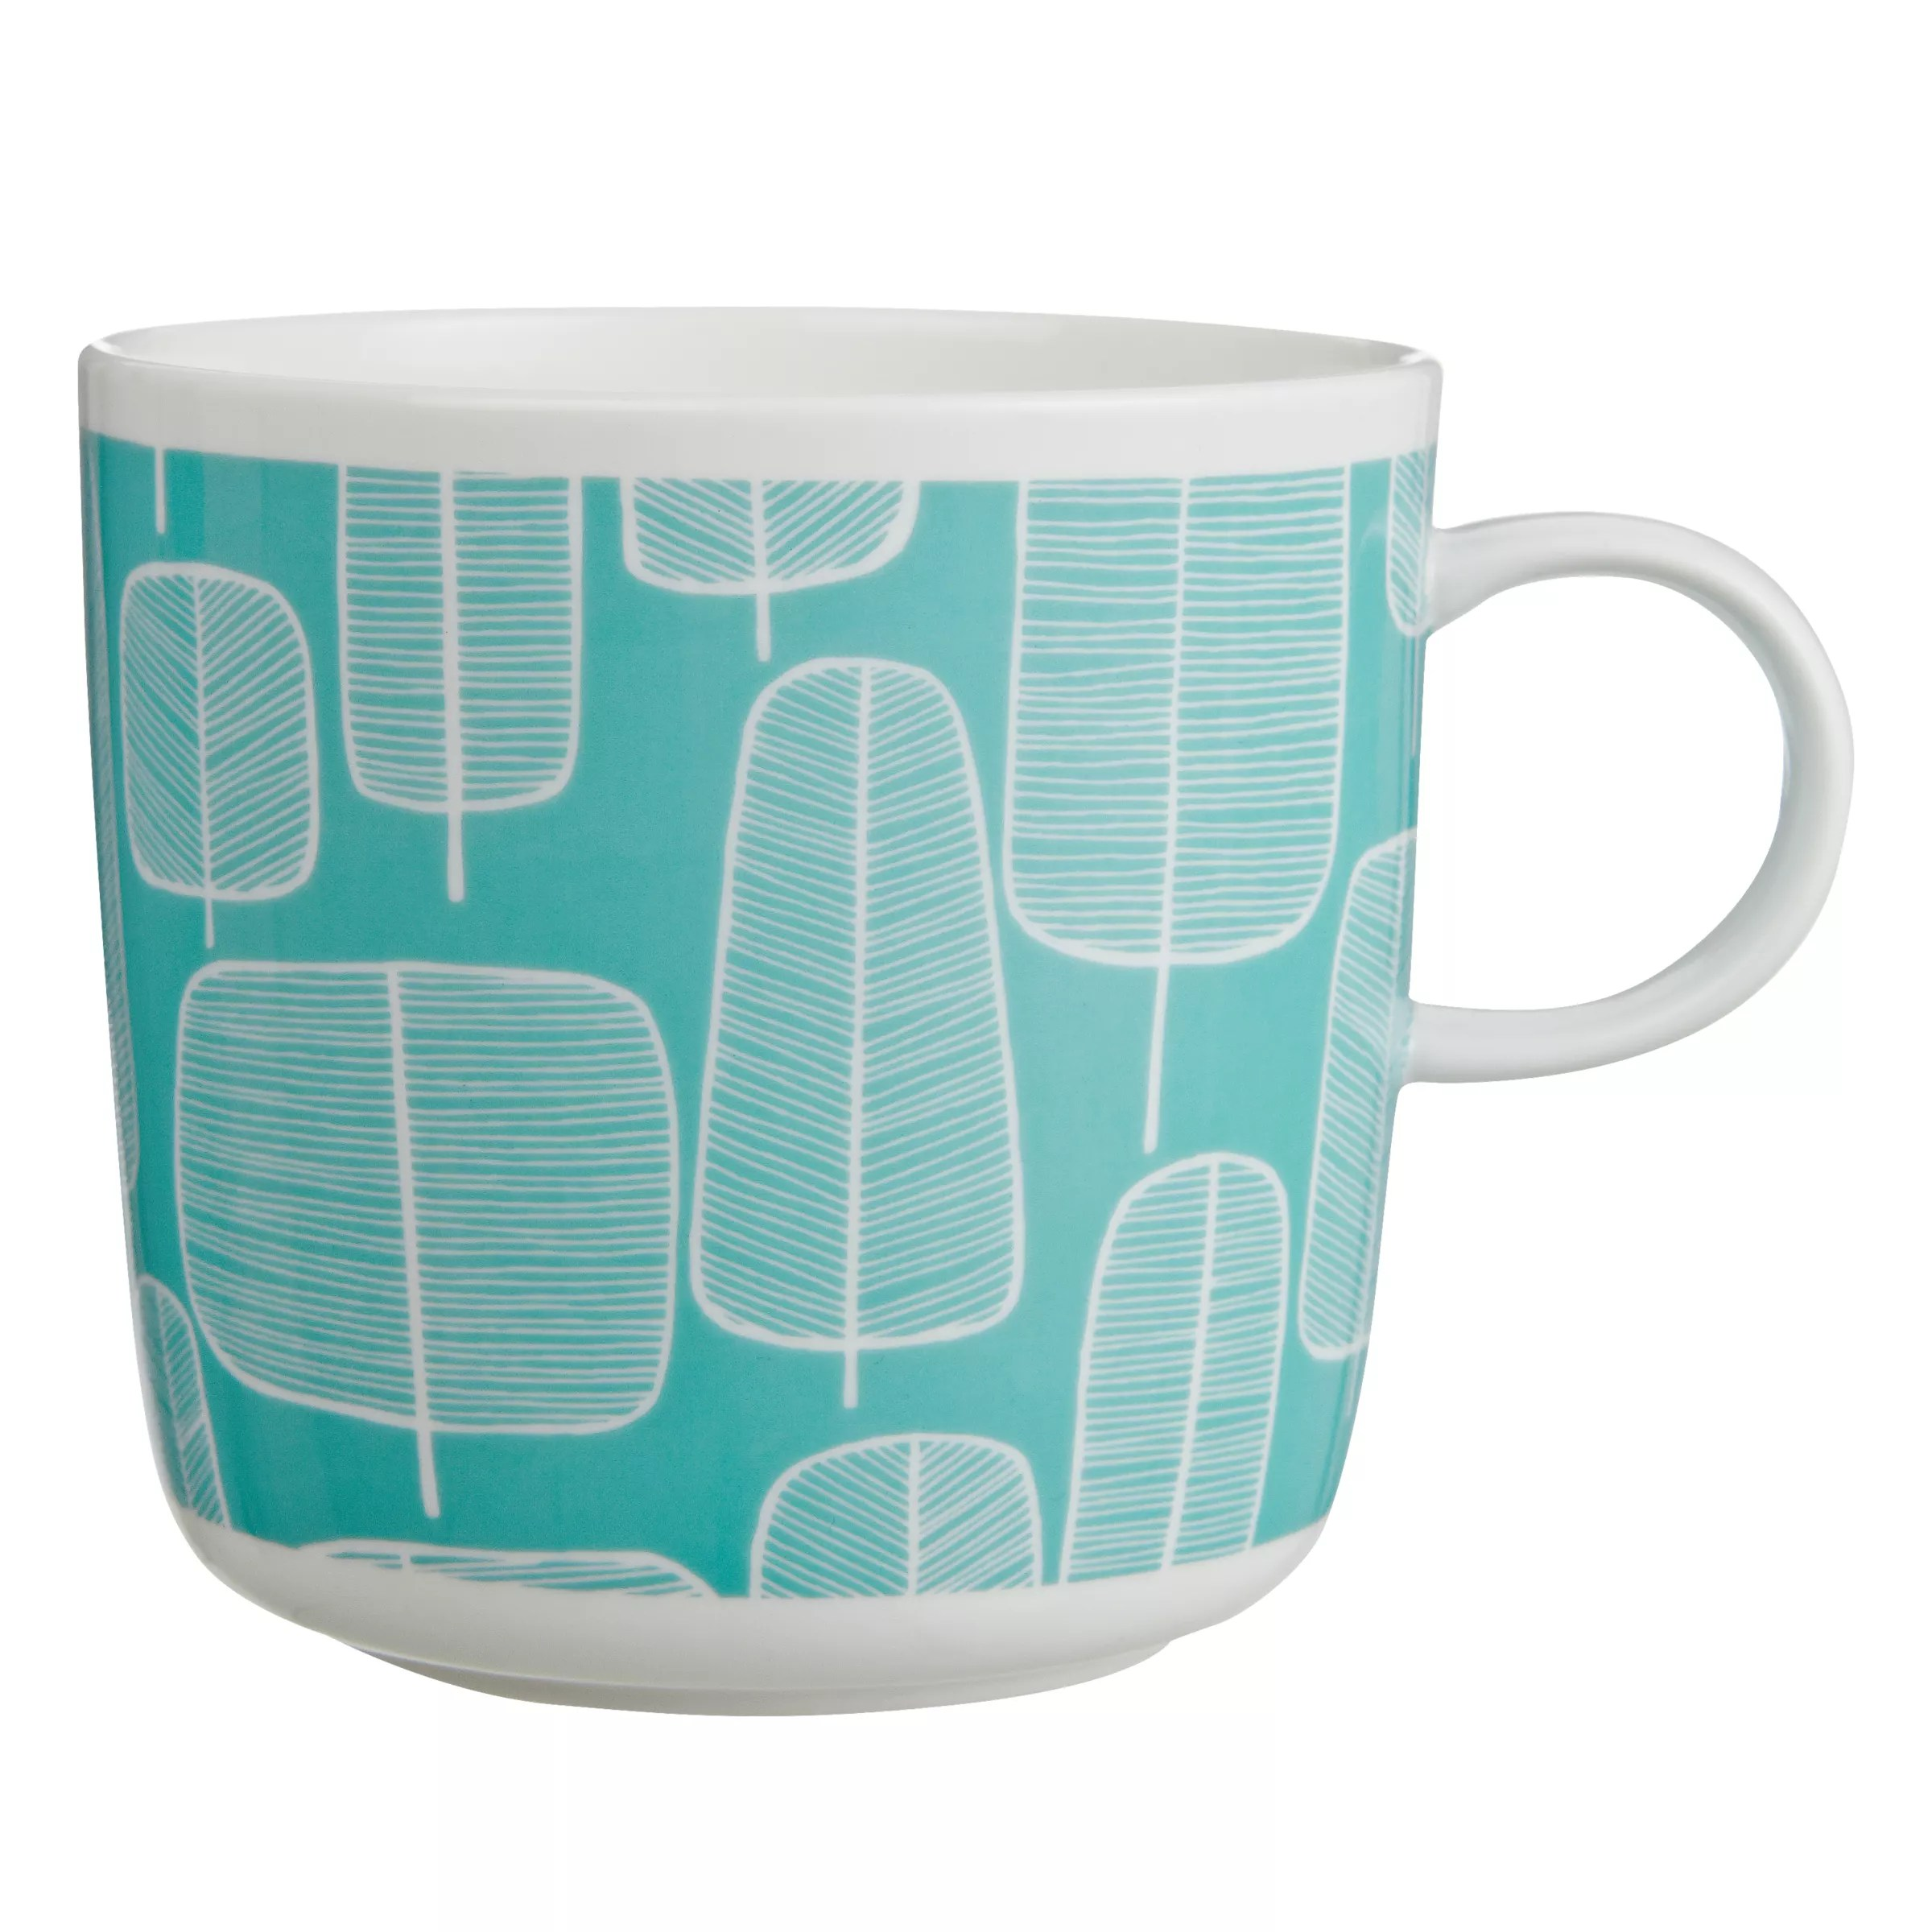 Buy MissPrint Little Trees Mug Online At